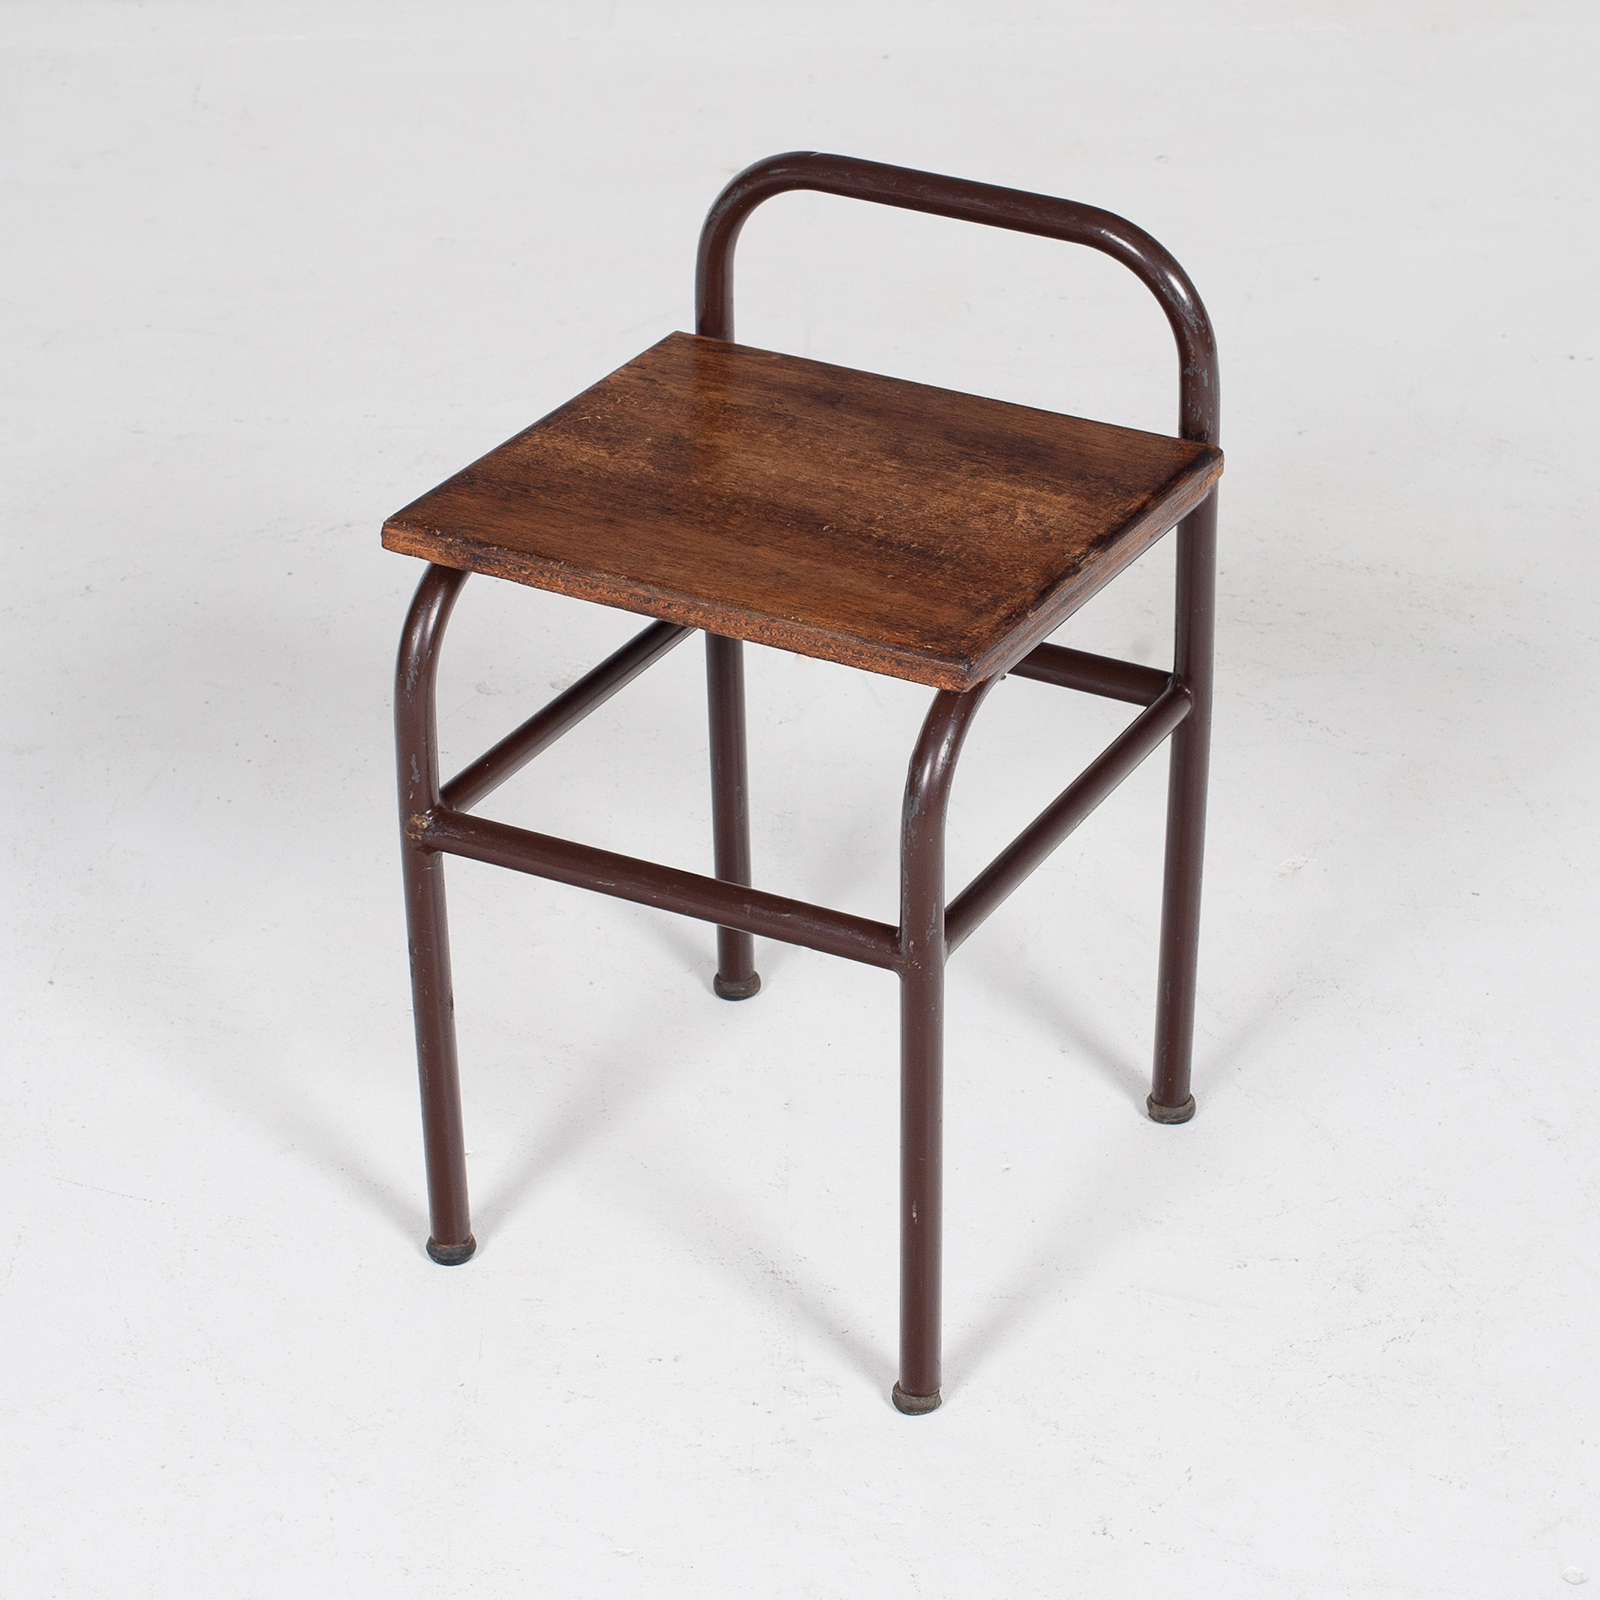 Industrial Stool With Timber Seat, Belgium Mt Stl 194 2602 Be Set 2 Of 2 80